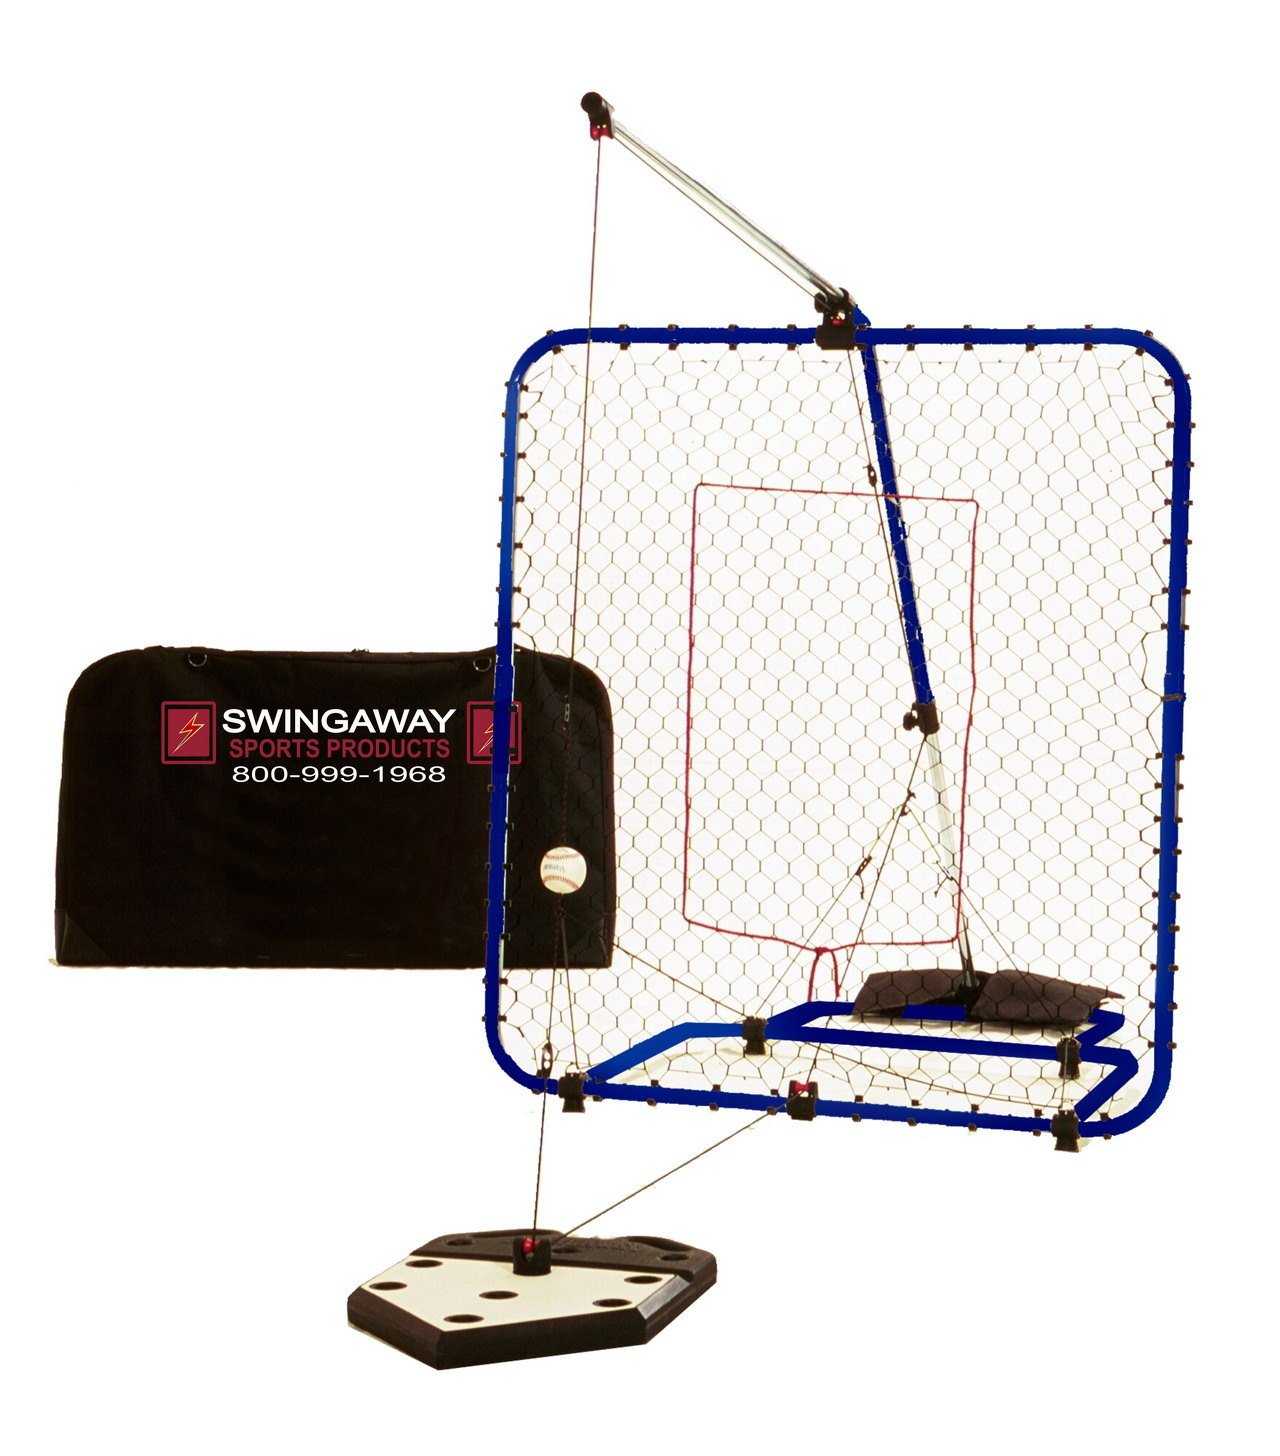 SwingAway Elite Traveler (Baseball) by Swing Away Sports